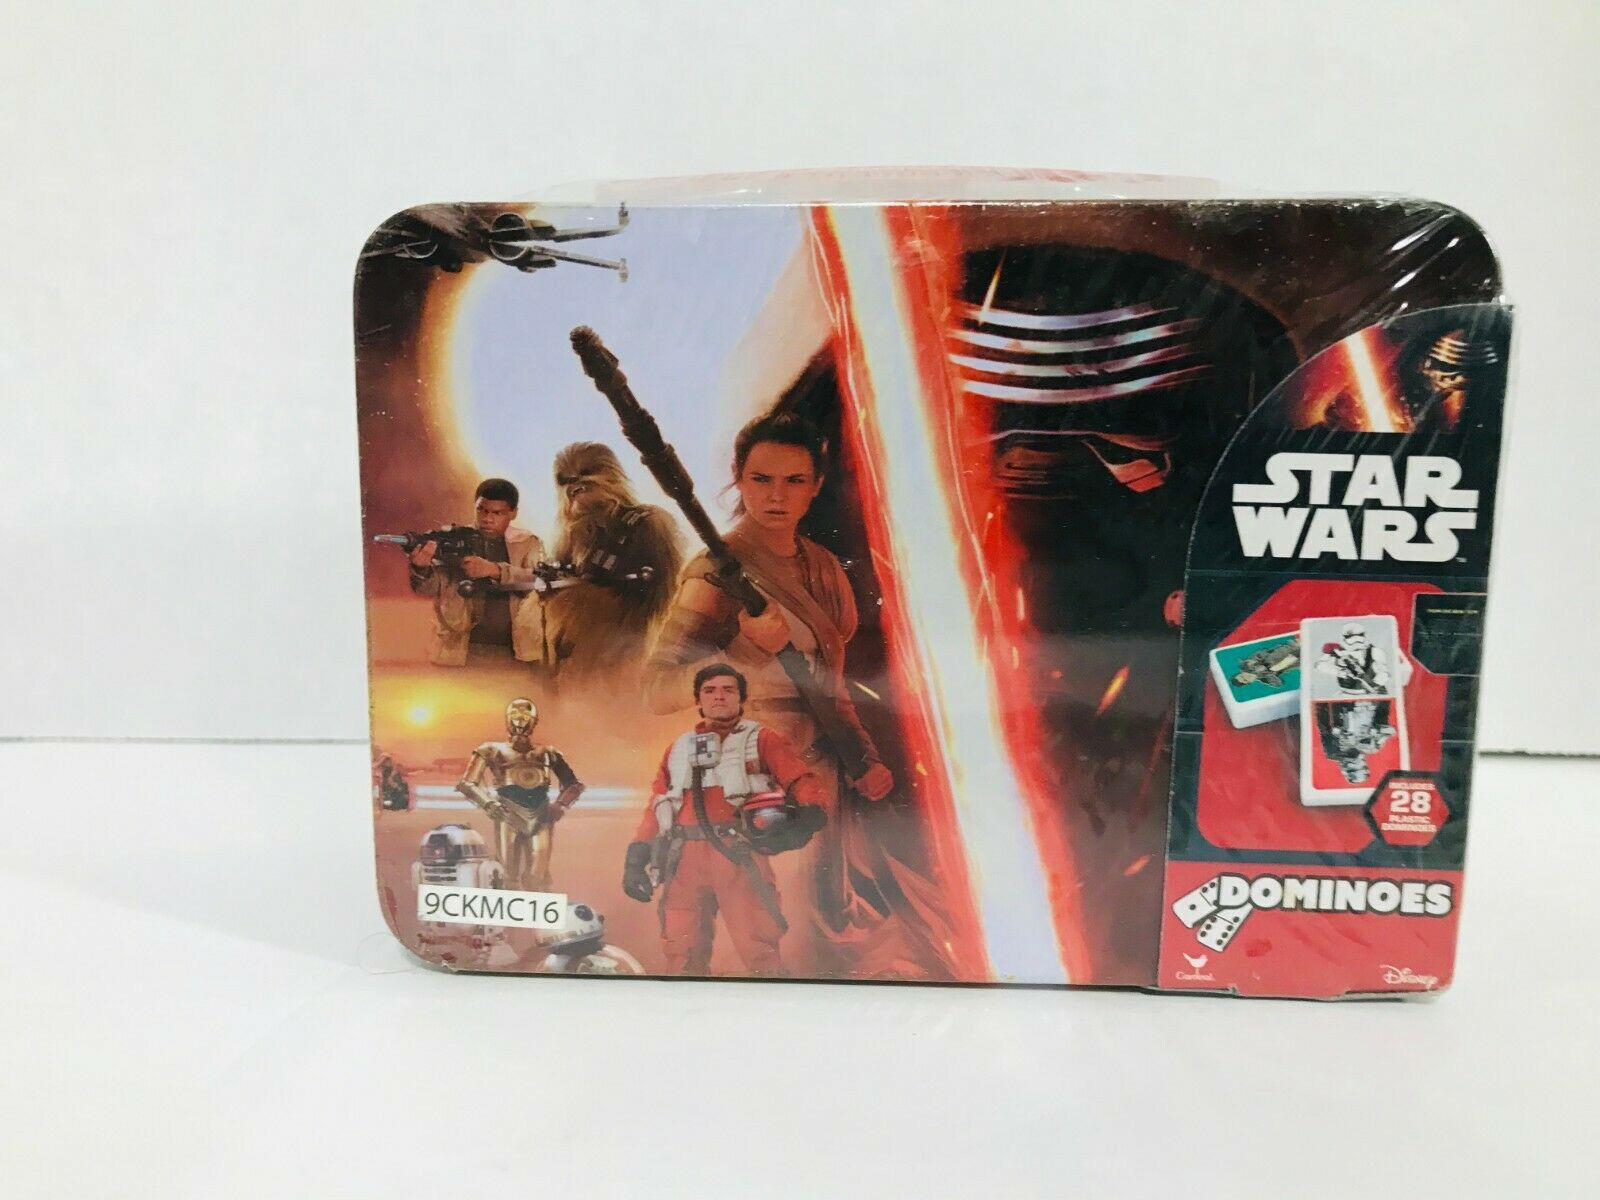 Star Wars Dominoes 28 Pack Lunch Box Collectors Tin Case Game- The Force Awakens - $14.84